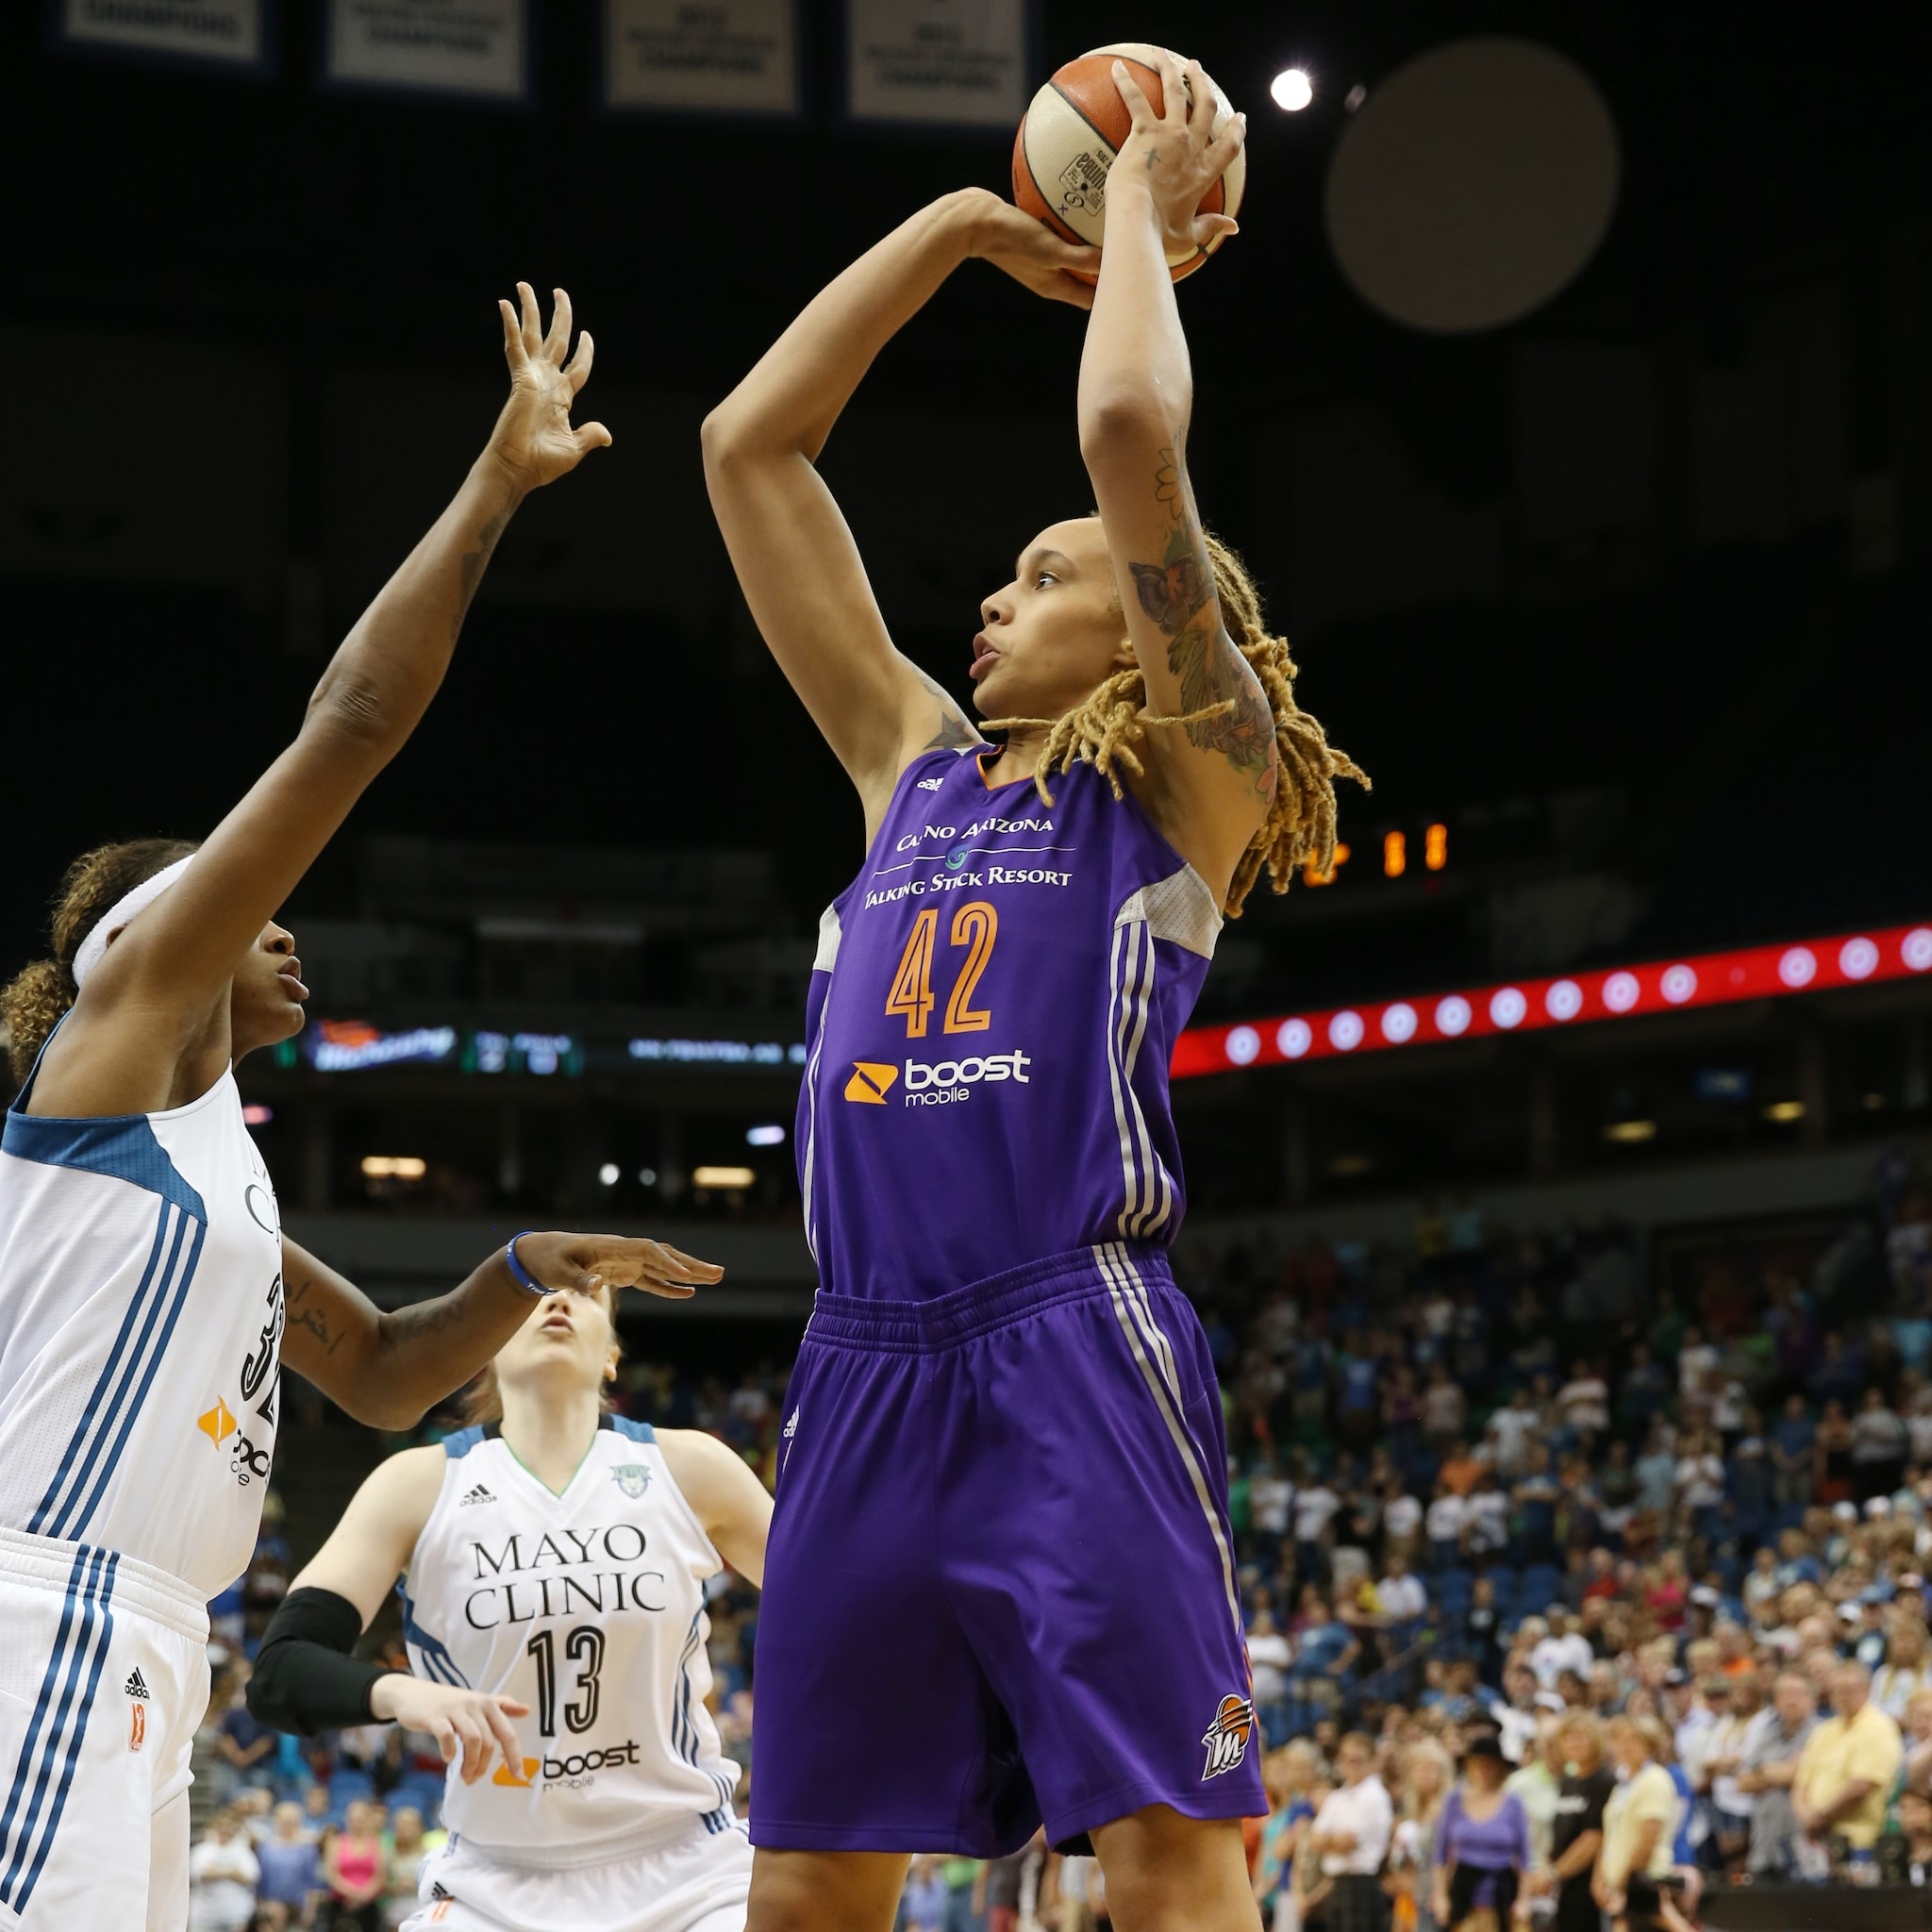 In her first game back from her seven-game suspension, Mercury center Brittney Griner scored 14 points and grabbed 11 rebounds while adding two blocked shots as well.